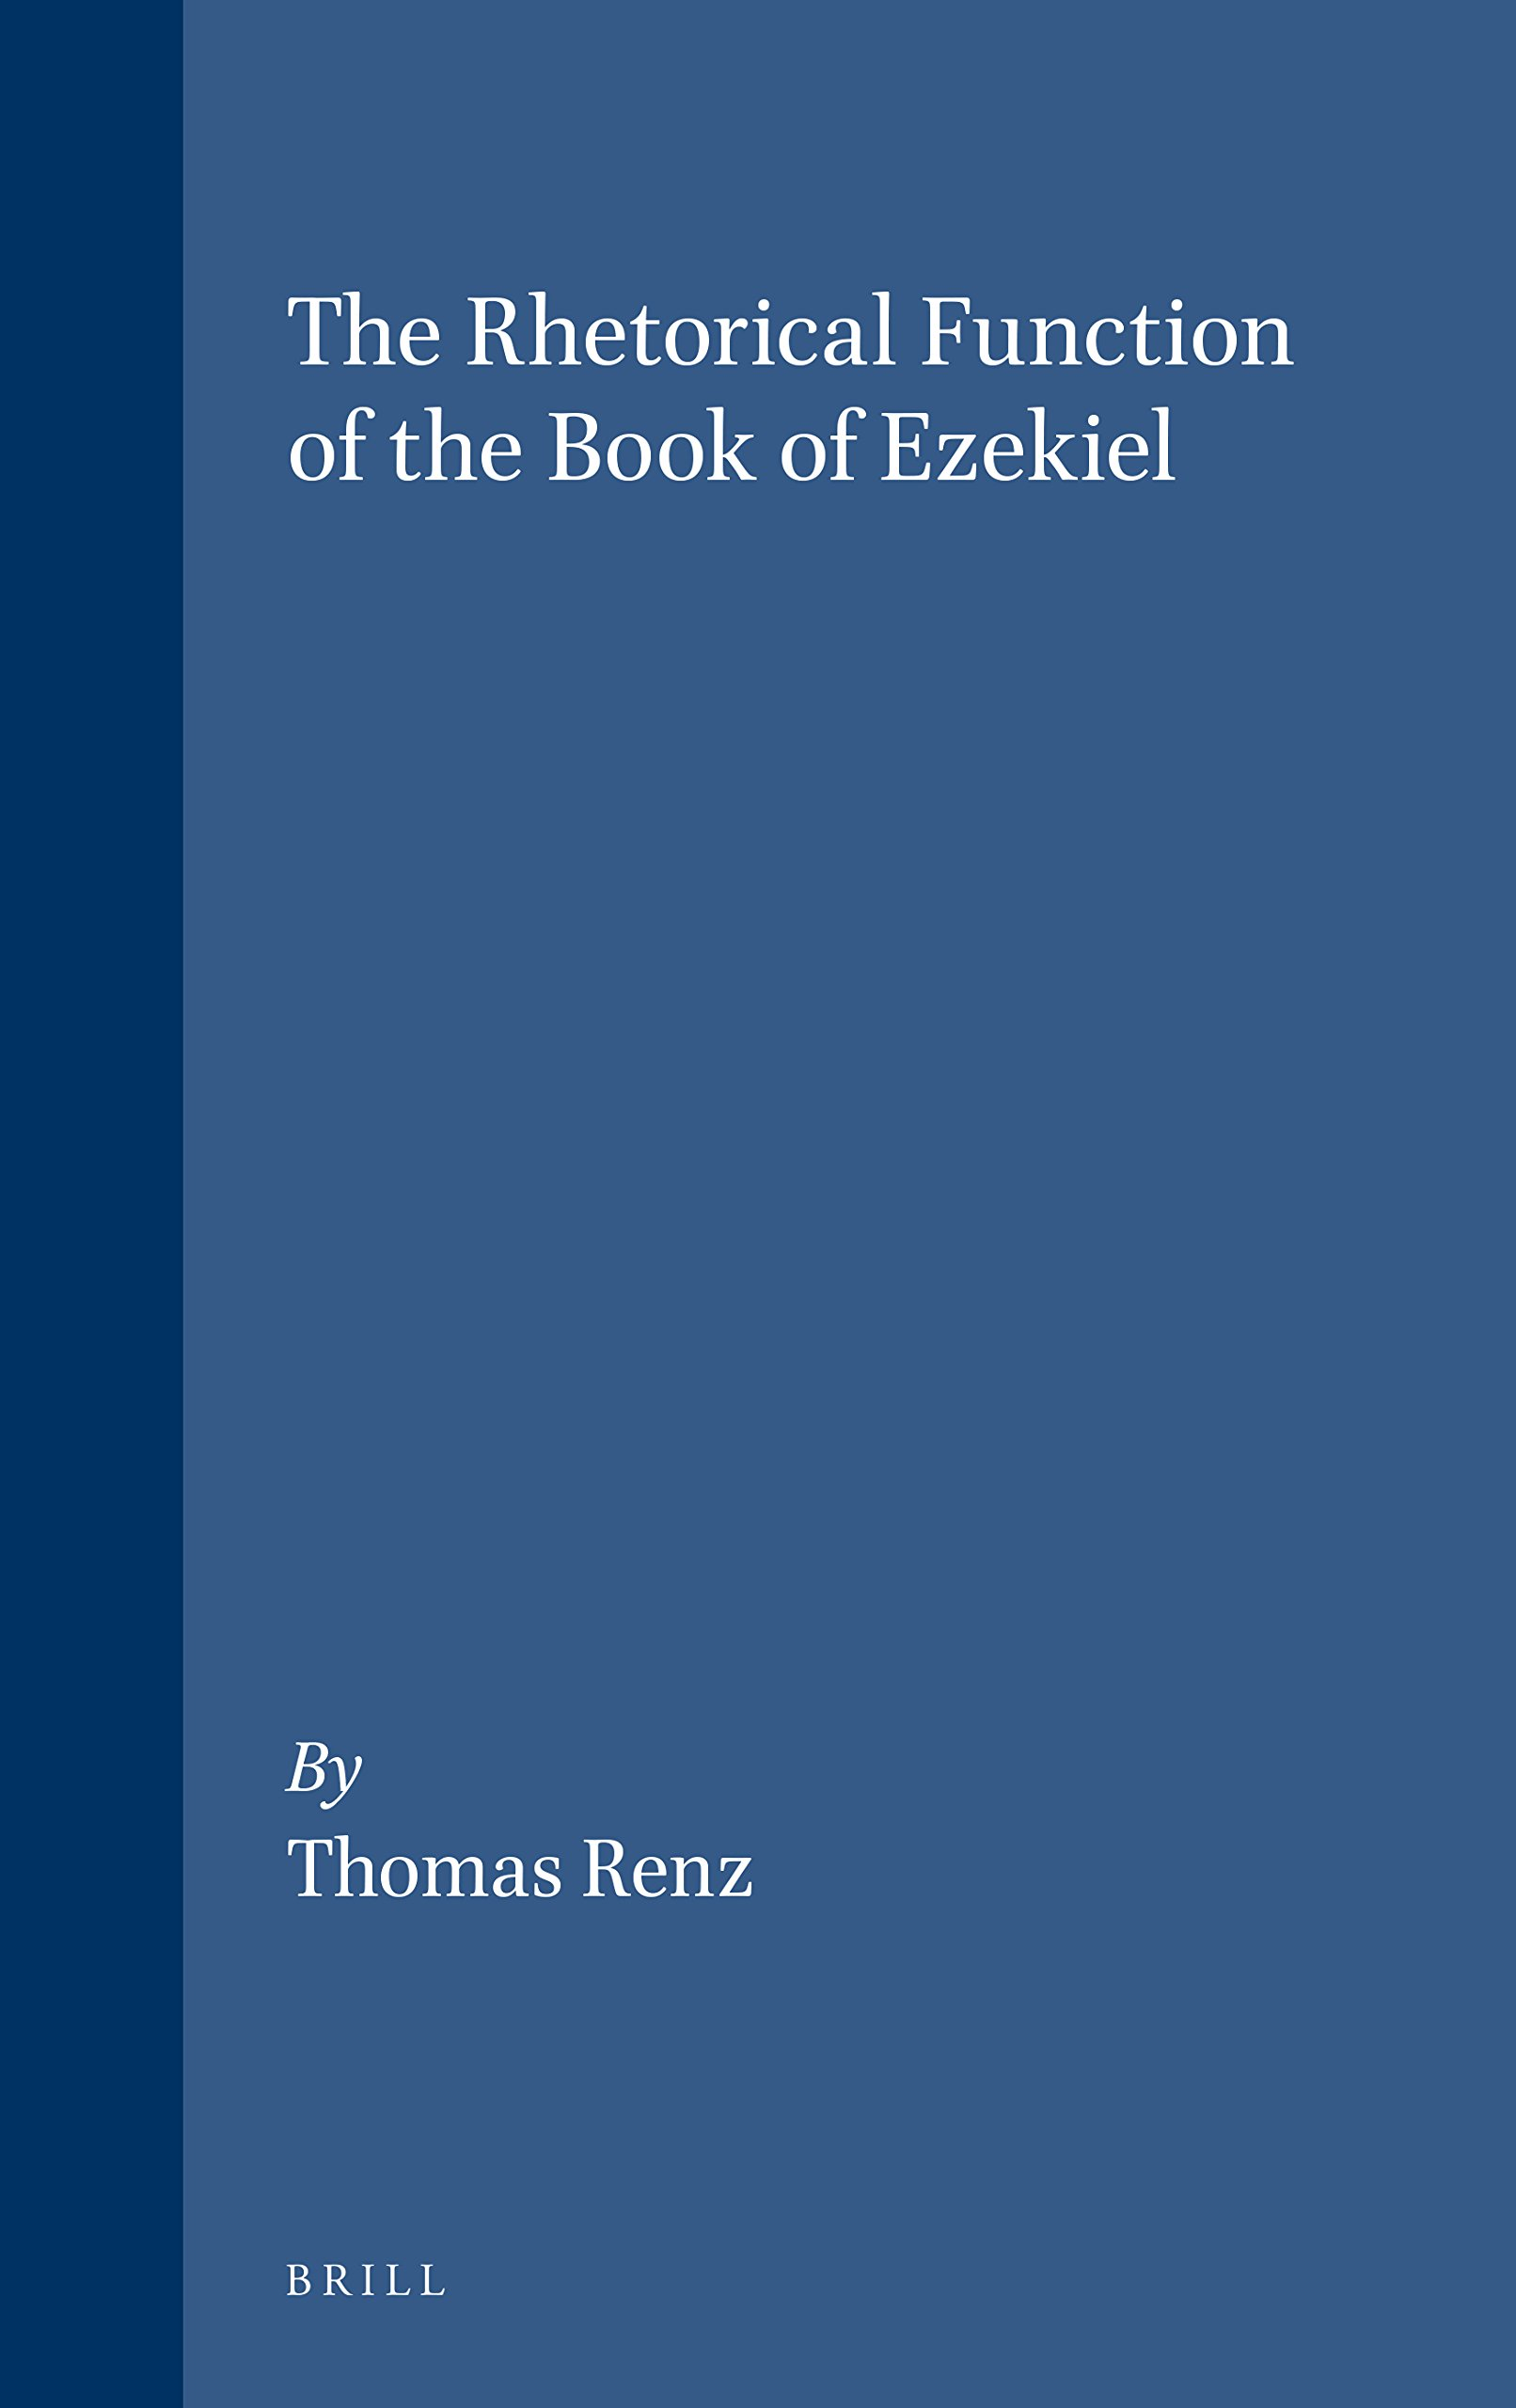 The Rhetorical Function of the Book of Ezekiel PDF